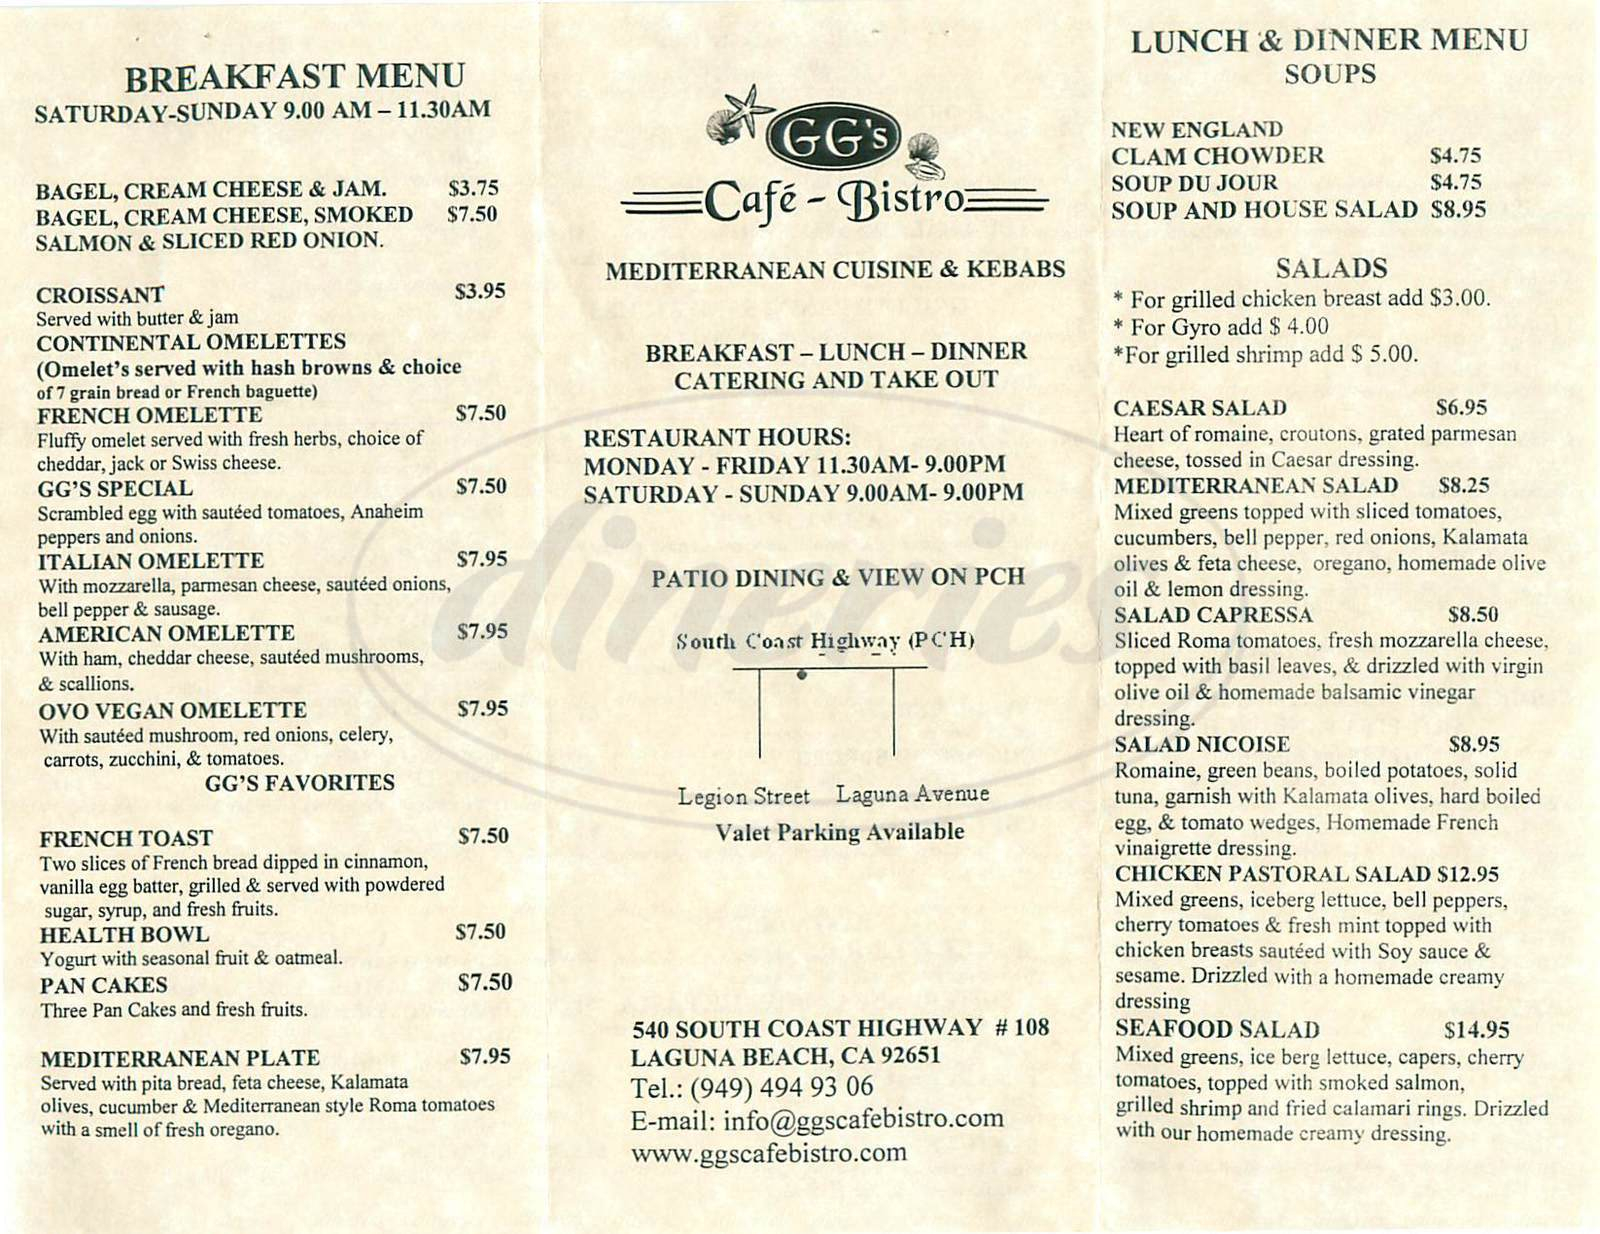 menu for GG's Café Bistro